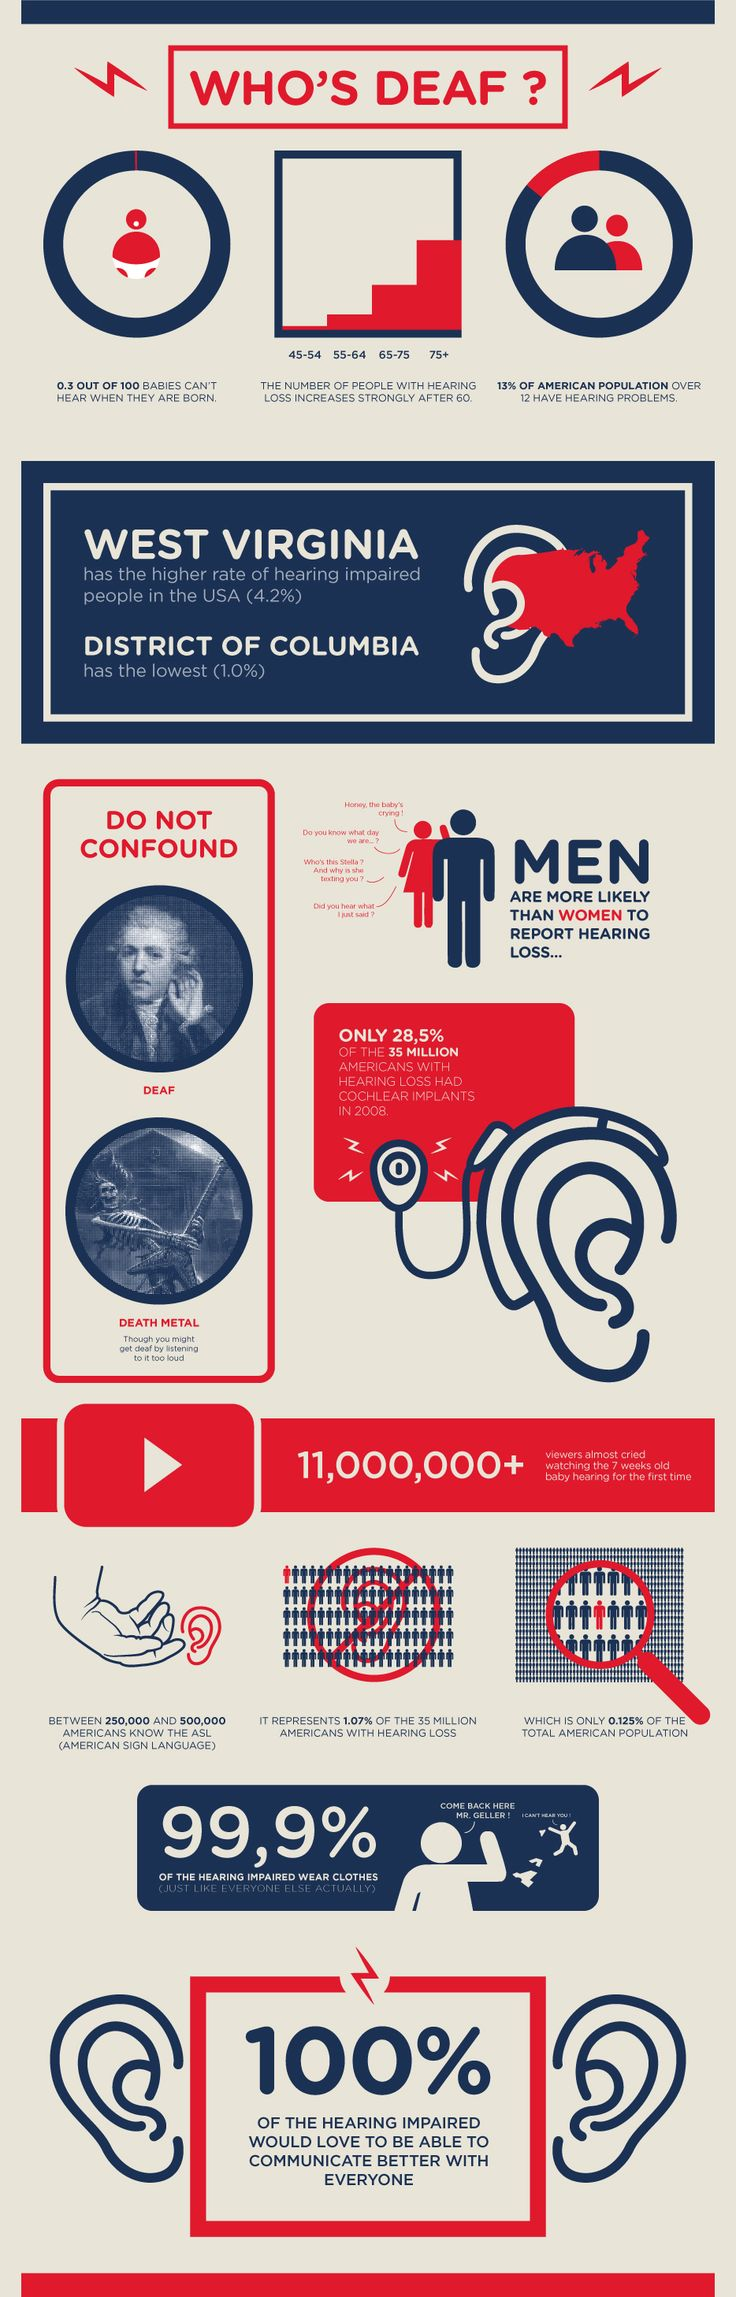 Who's deaf? - Humoristic infographic created as a research piece for the Hearsay project - Julien Noguera on Behance